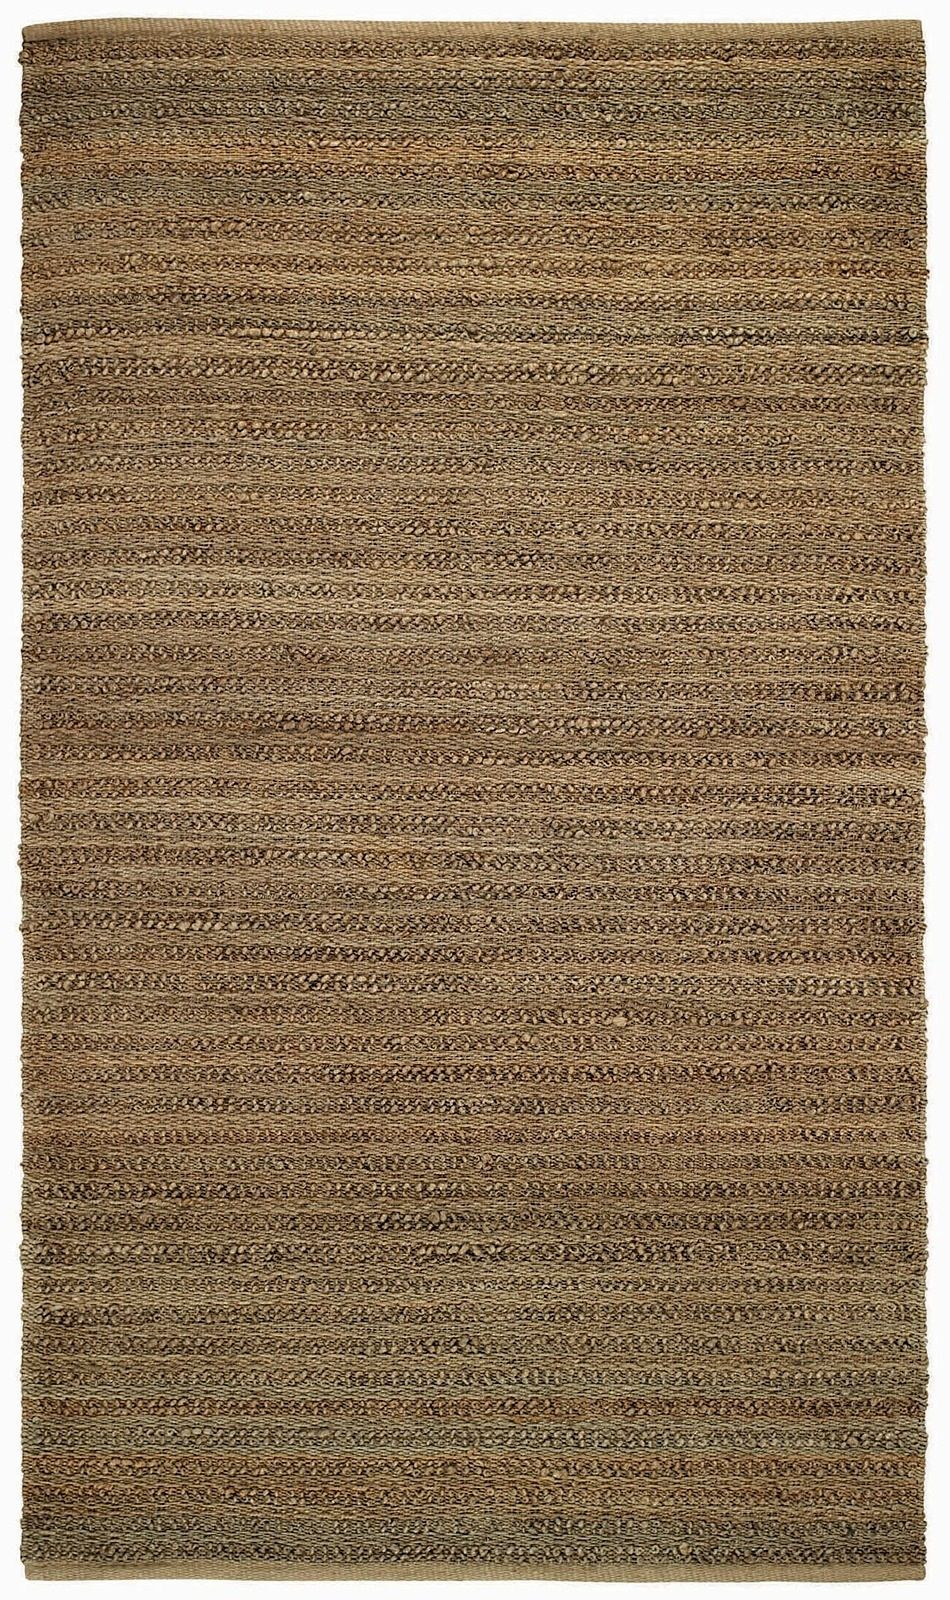 capel cypress-loop contemporary area rug collection